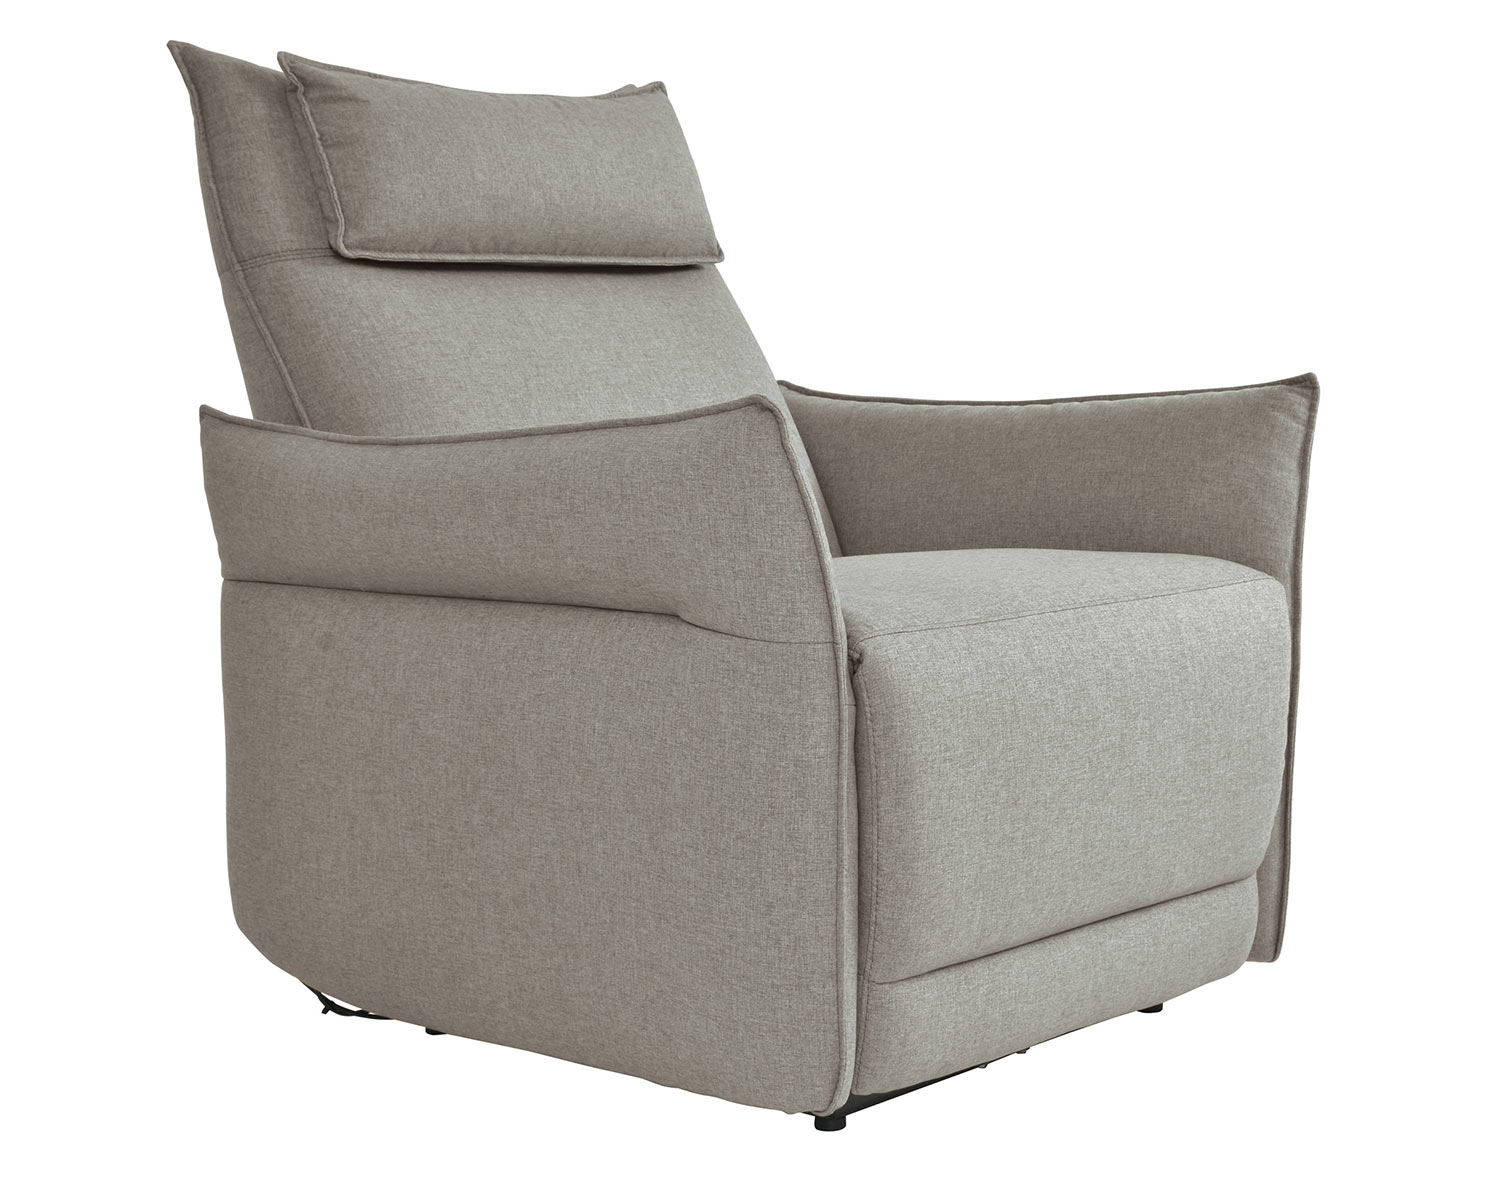 Homelegance Linette Power Reclining Chair with Power Headrest - Taupe